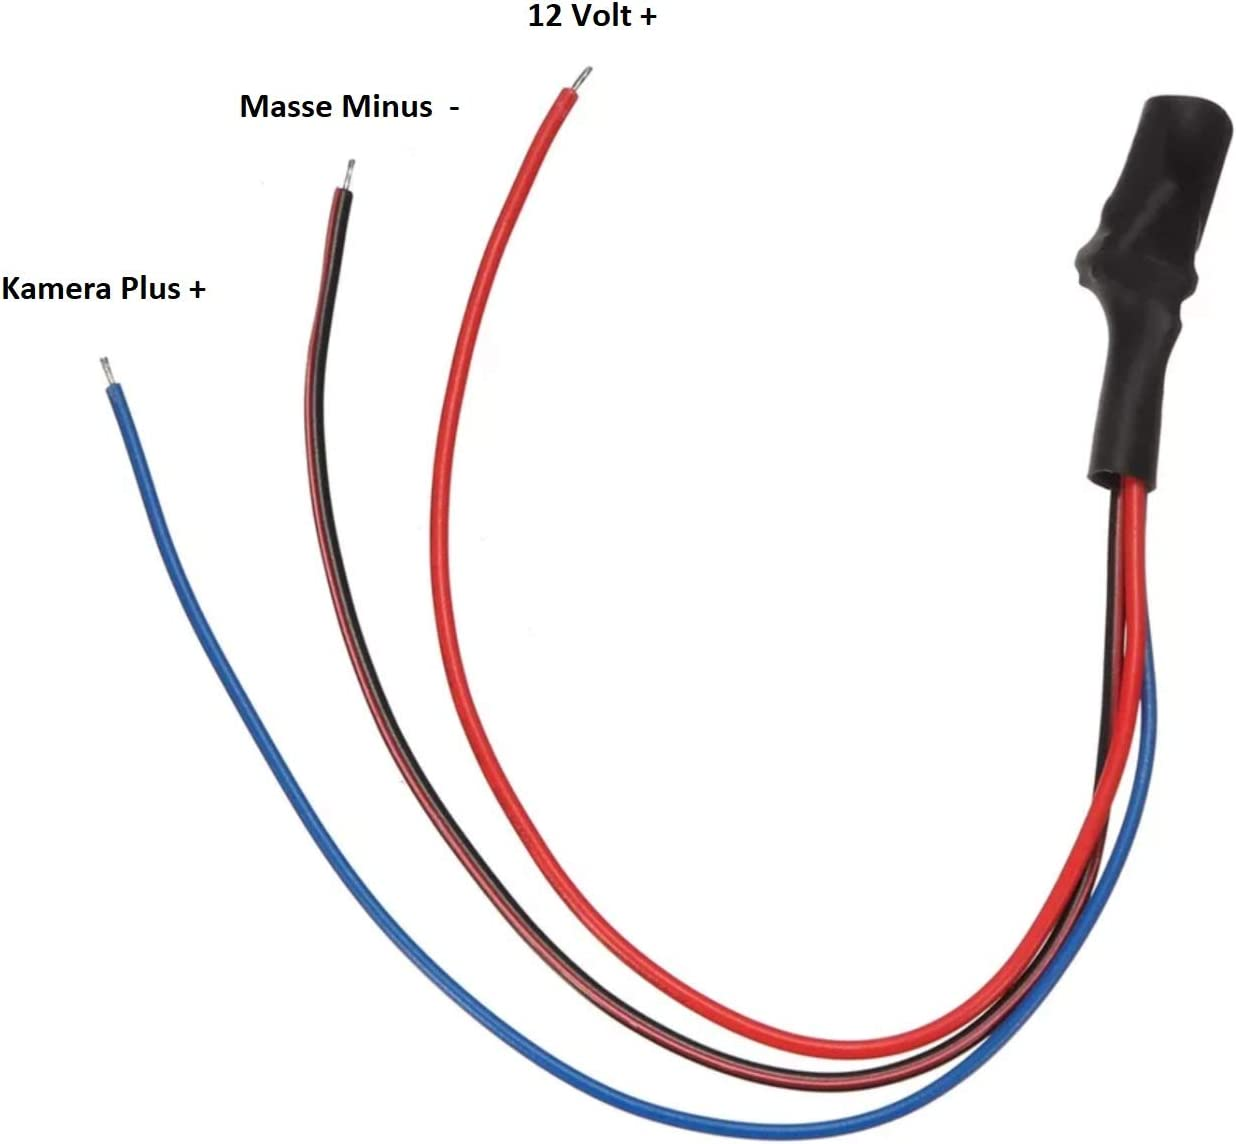 Getaktete Power Signal Filter and 12/Volt for Reversing Camera Canbus